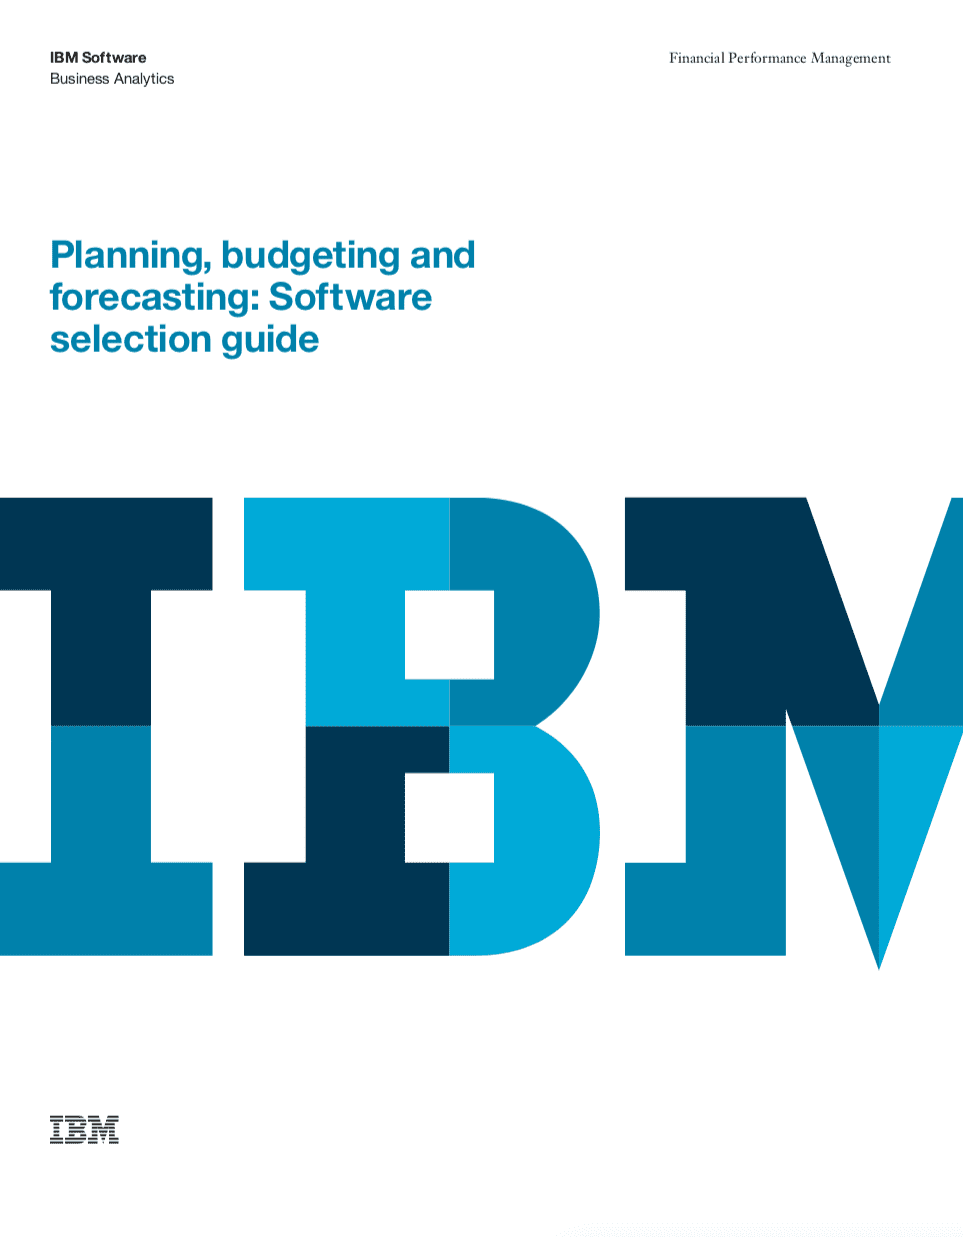 Planning, Budgeting, Forecasting: Software Selection Guide